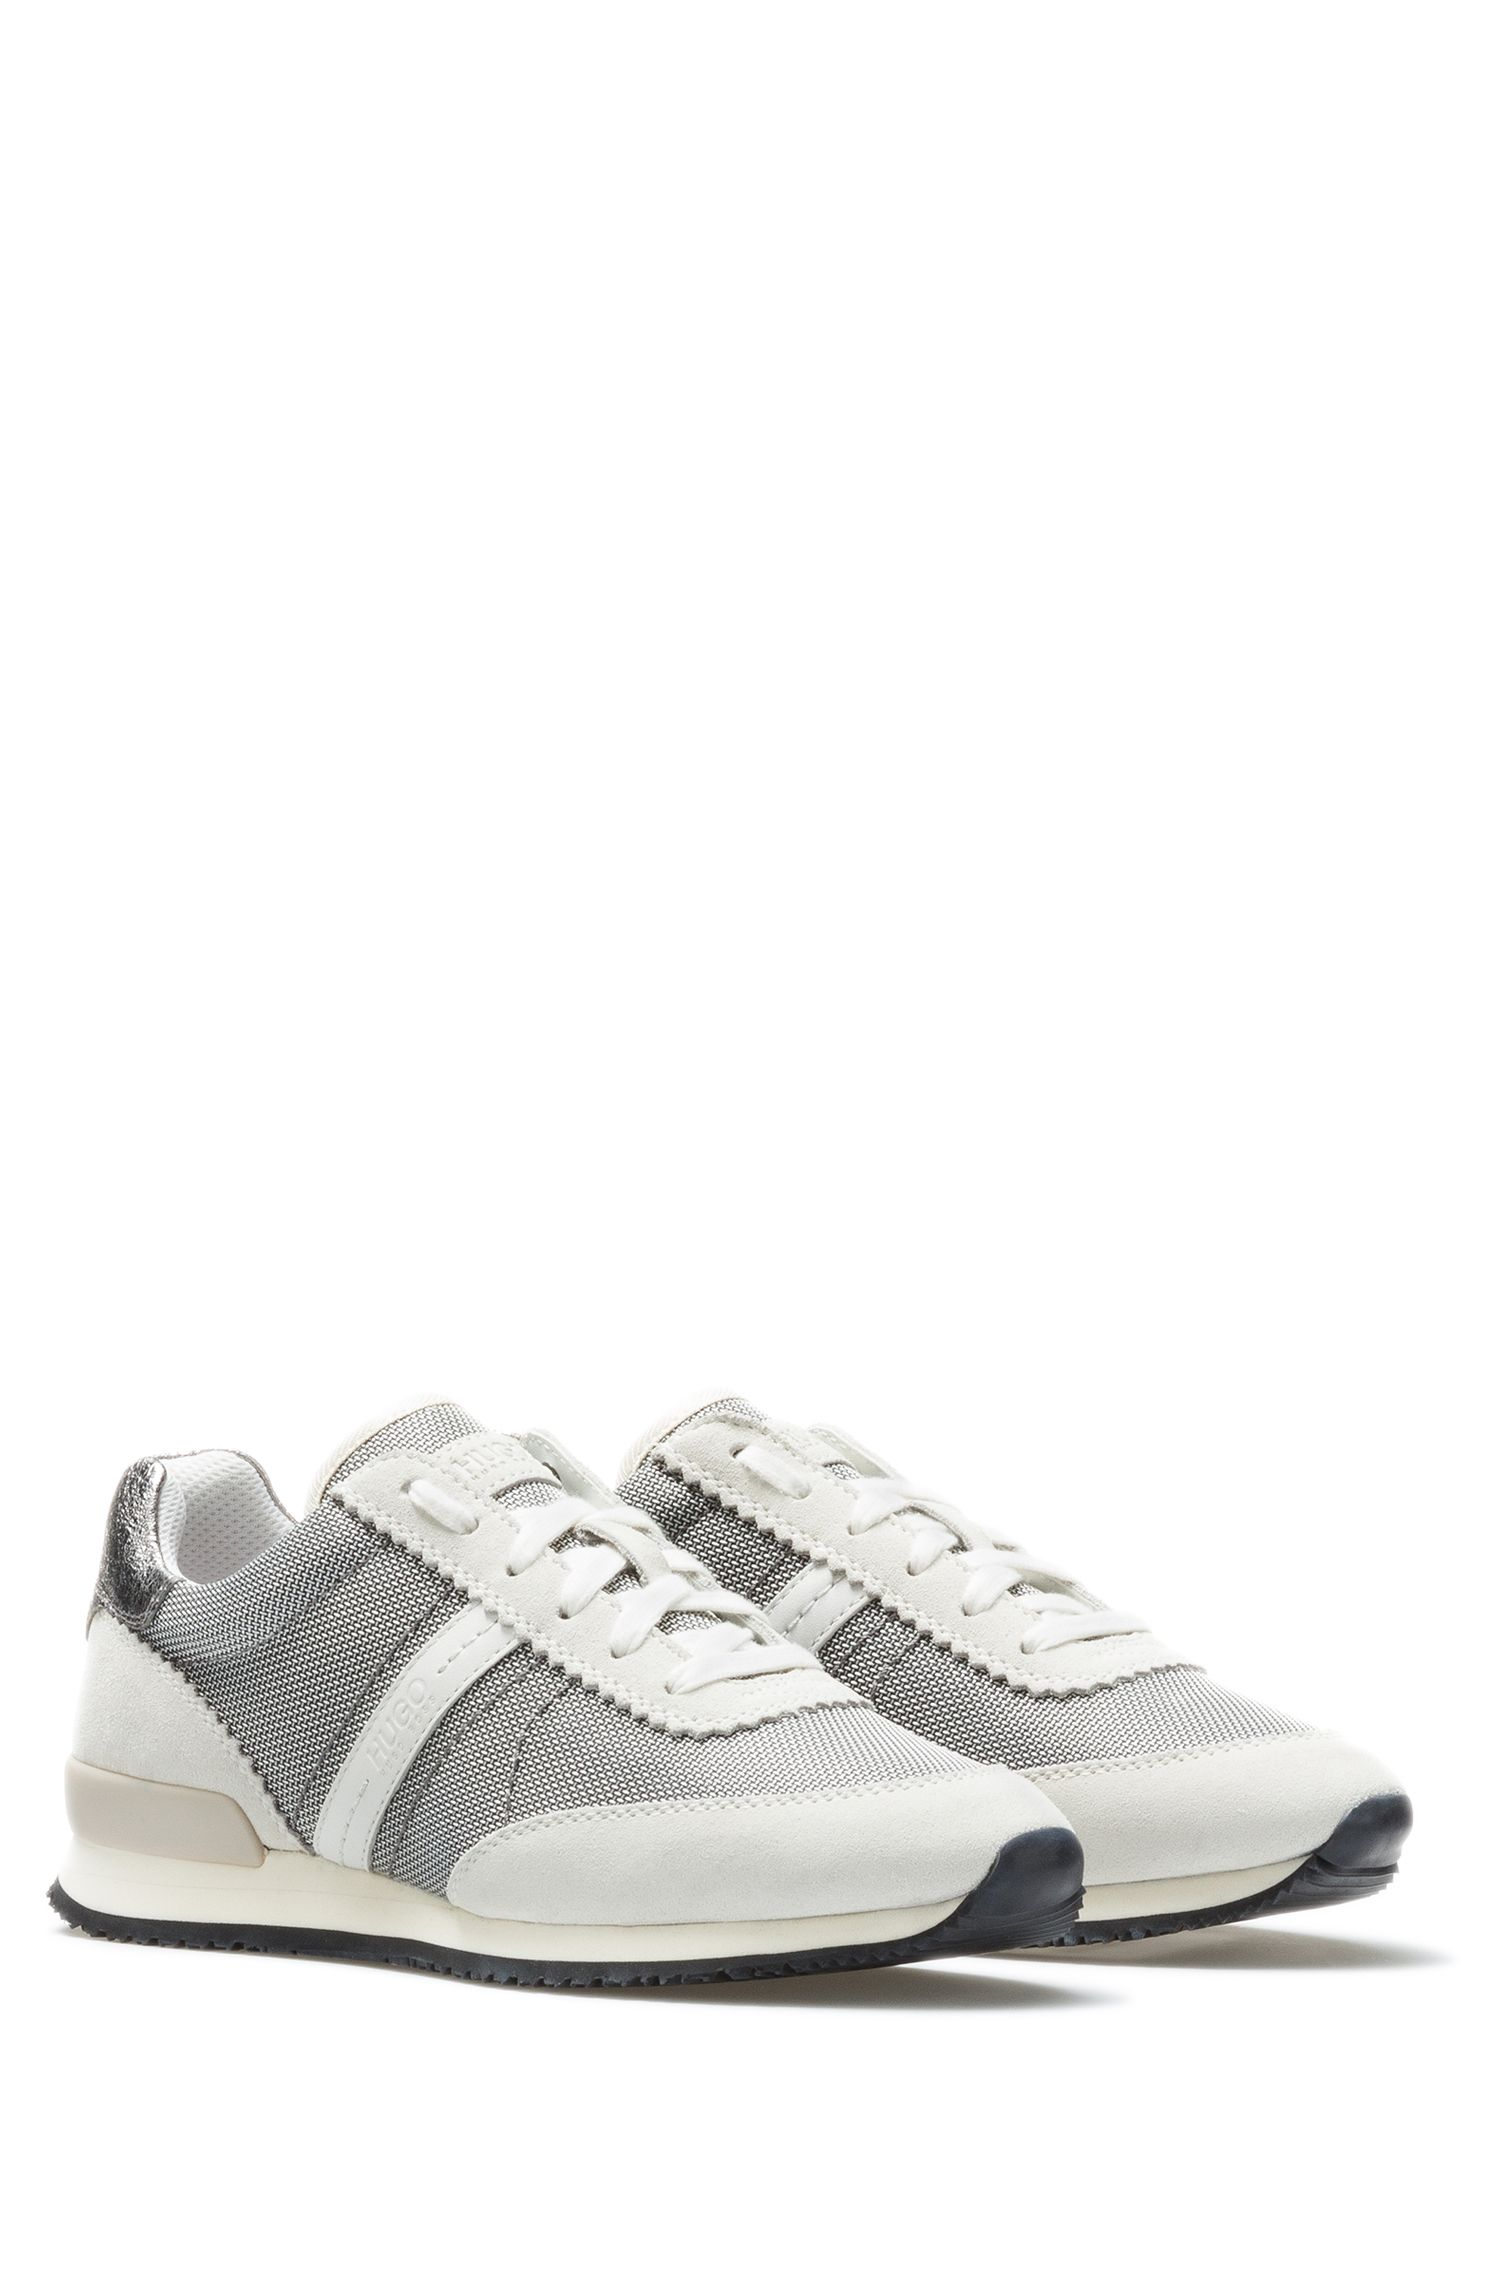 Sneakers low-top in morbida pelle scamosciata